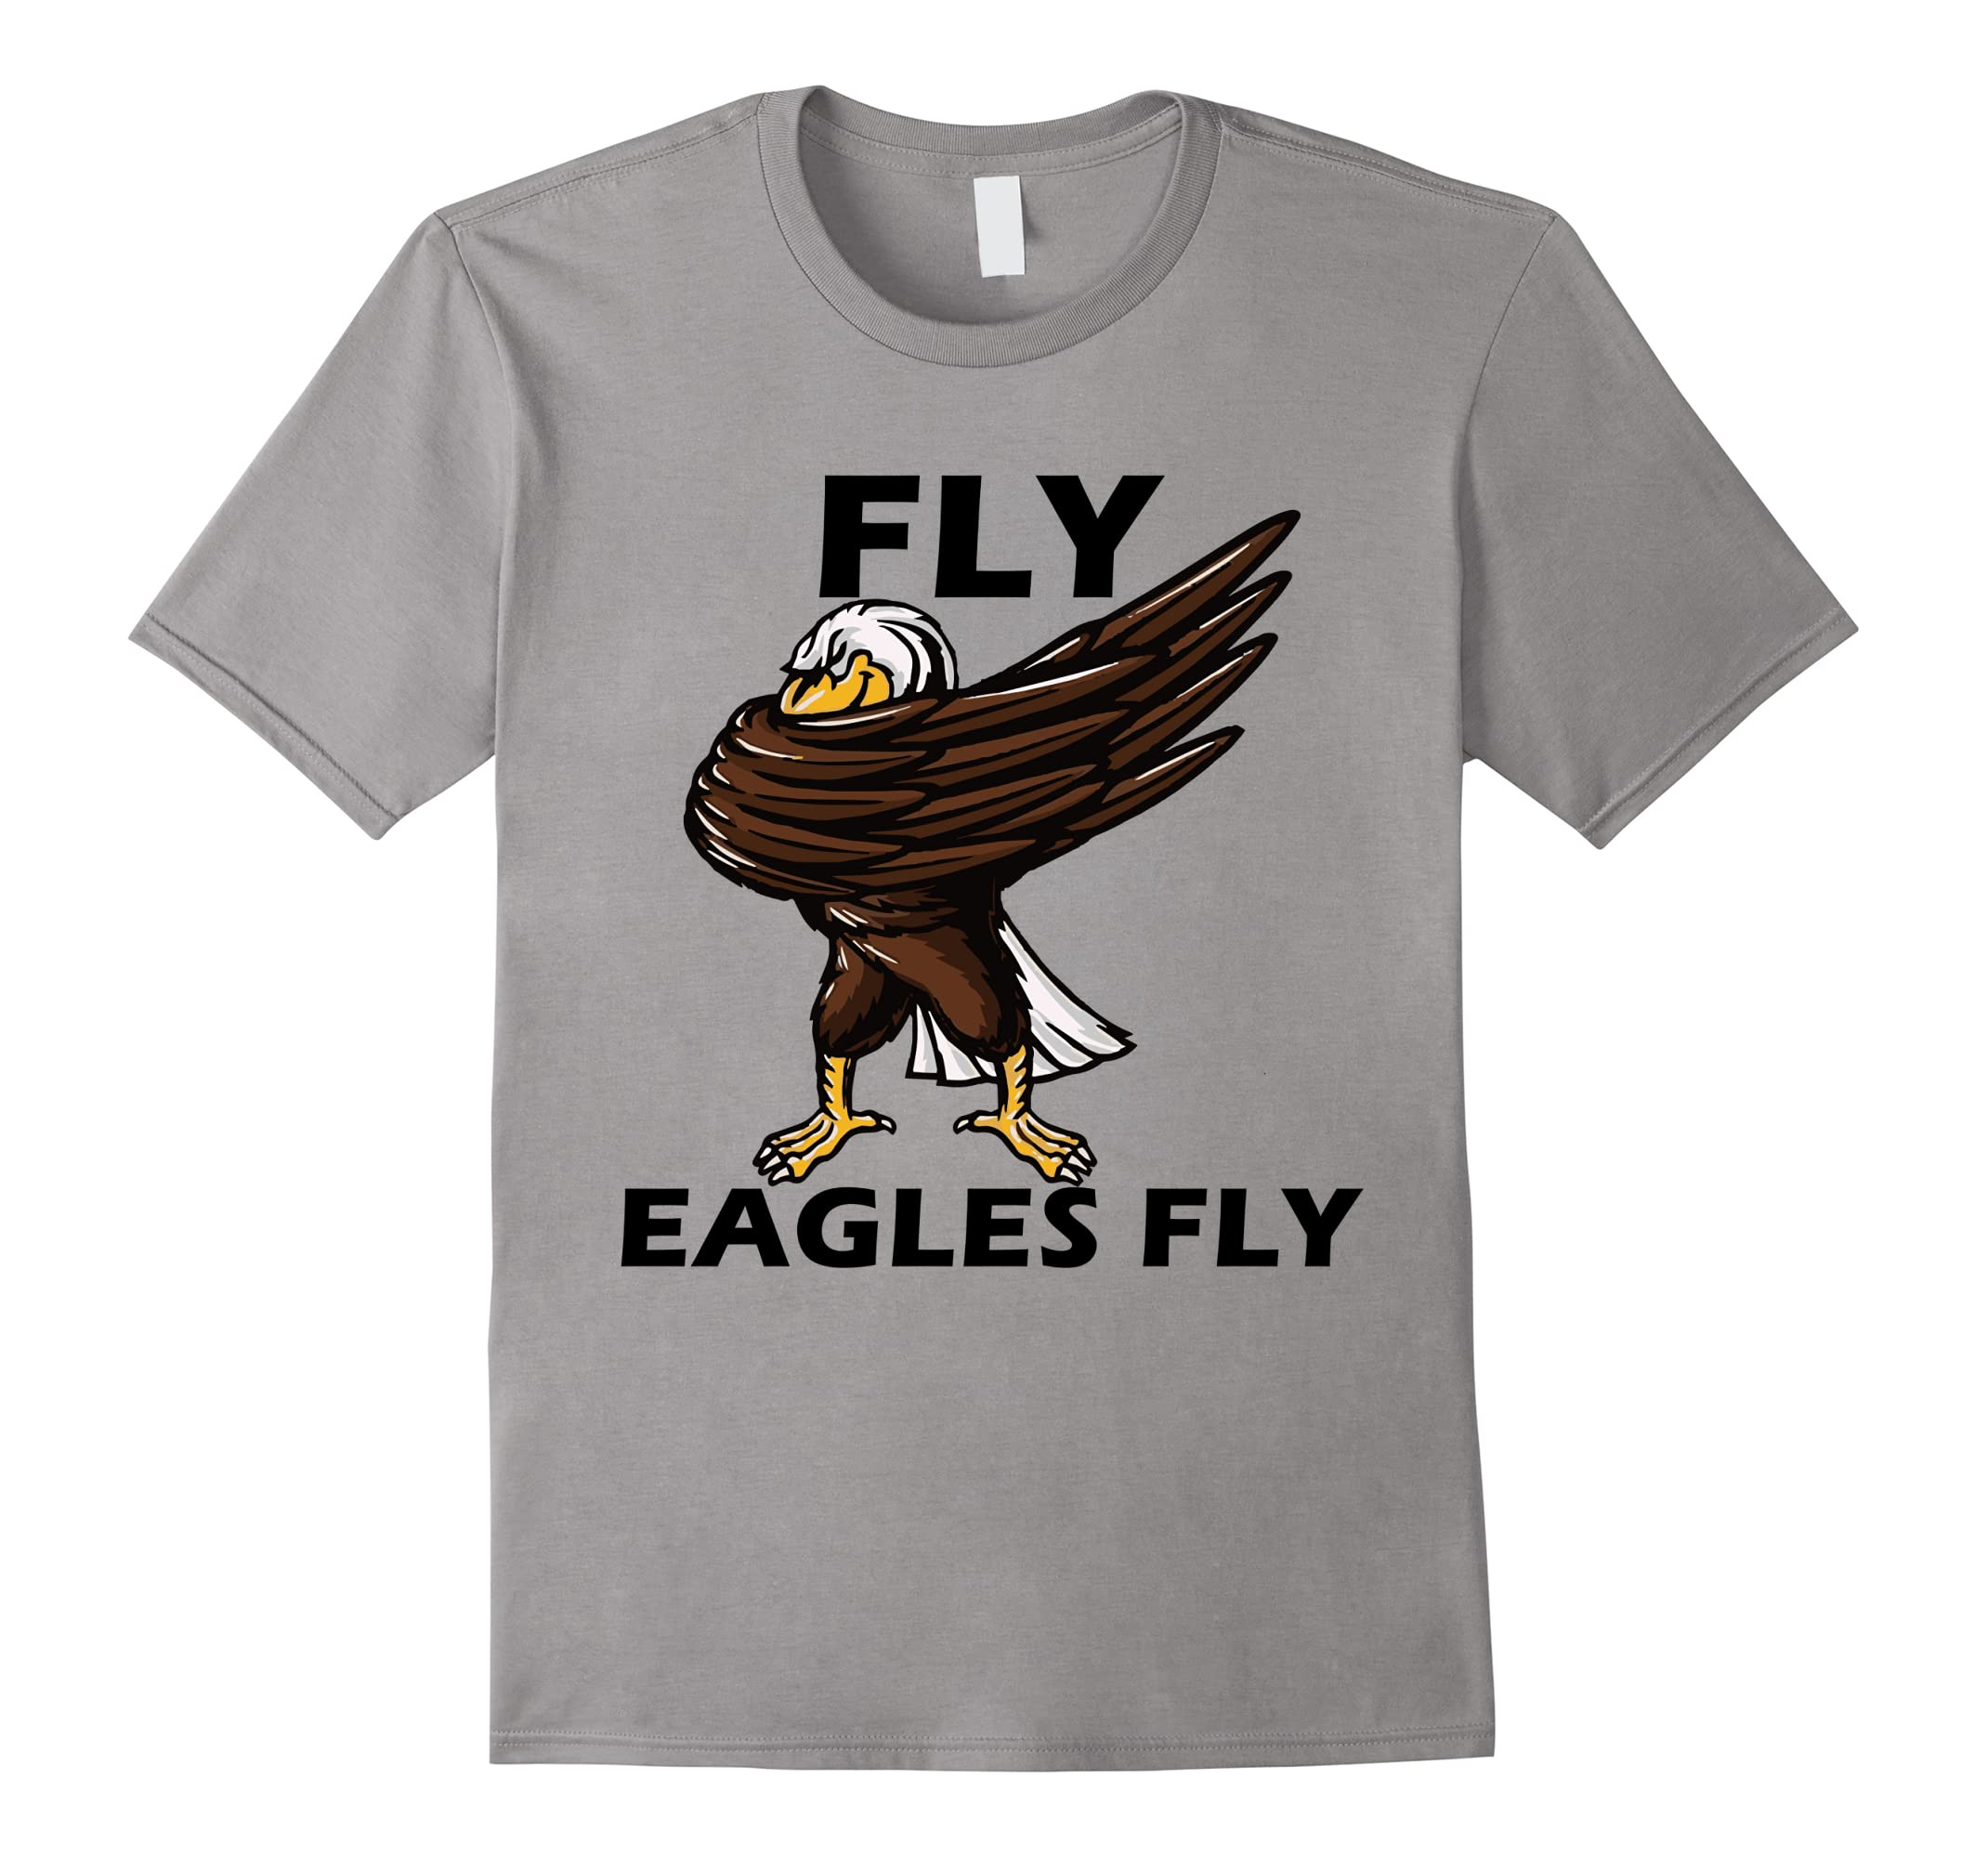 Dabbing Eagle Shirt saying 'FLY EAGLES' - Great Gift Tee-ah my shirt one gift